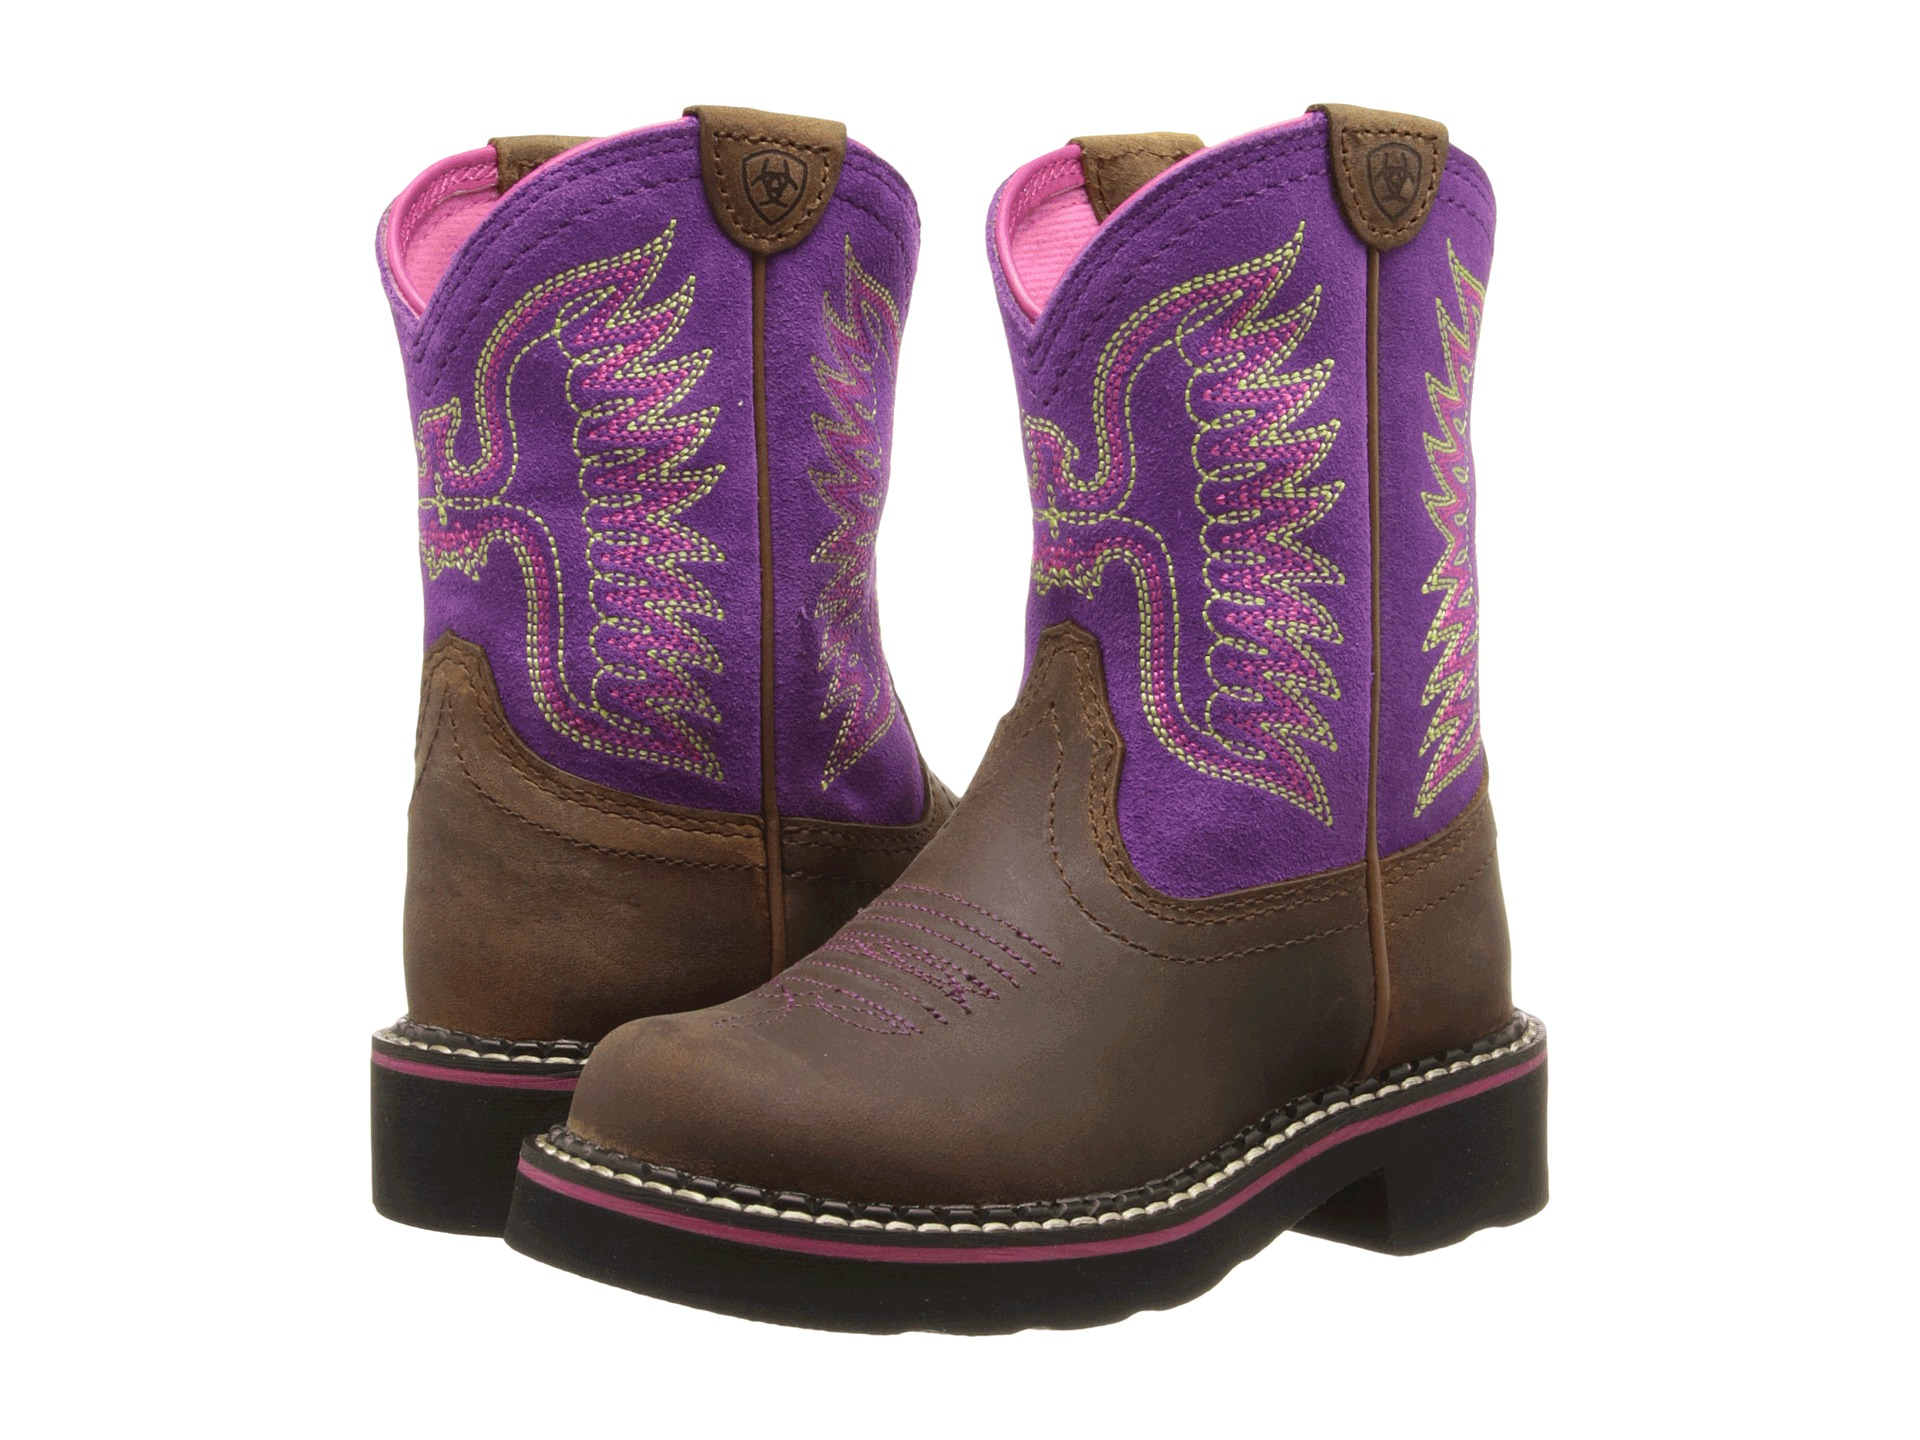 Ariat, Shoes, Girls | Shipped Free at Zappos